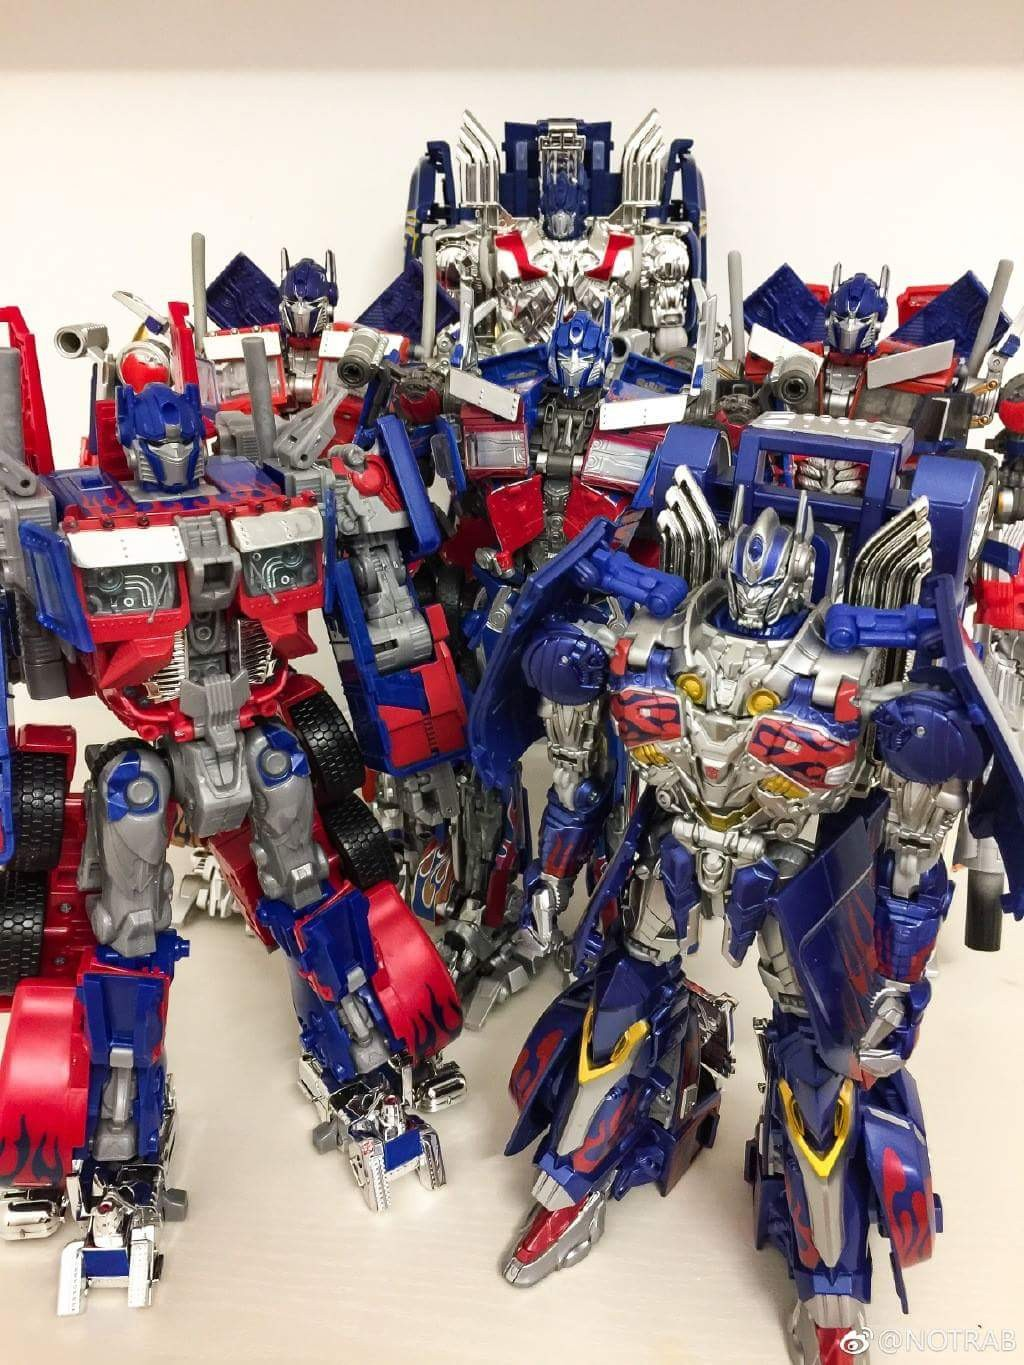 Transformers News: Comparison Shots for Transformers '07 Leader Optimus Prime Re-release, with MPM-4, The Last Knight